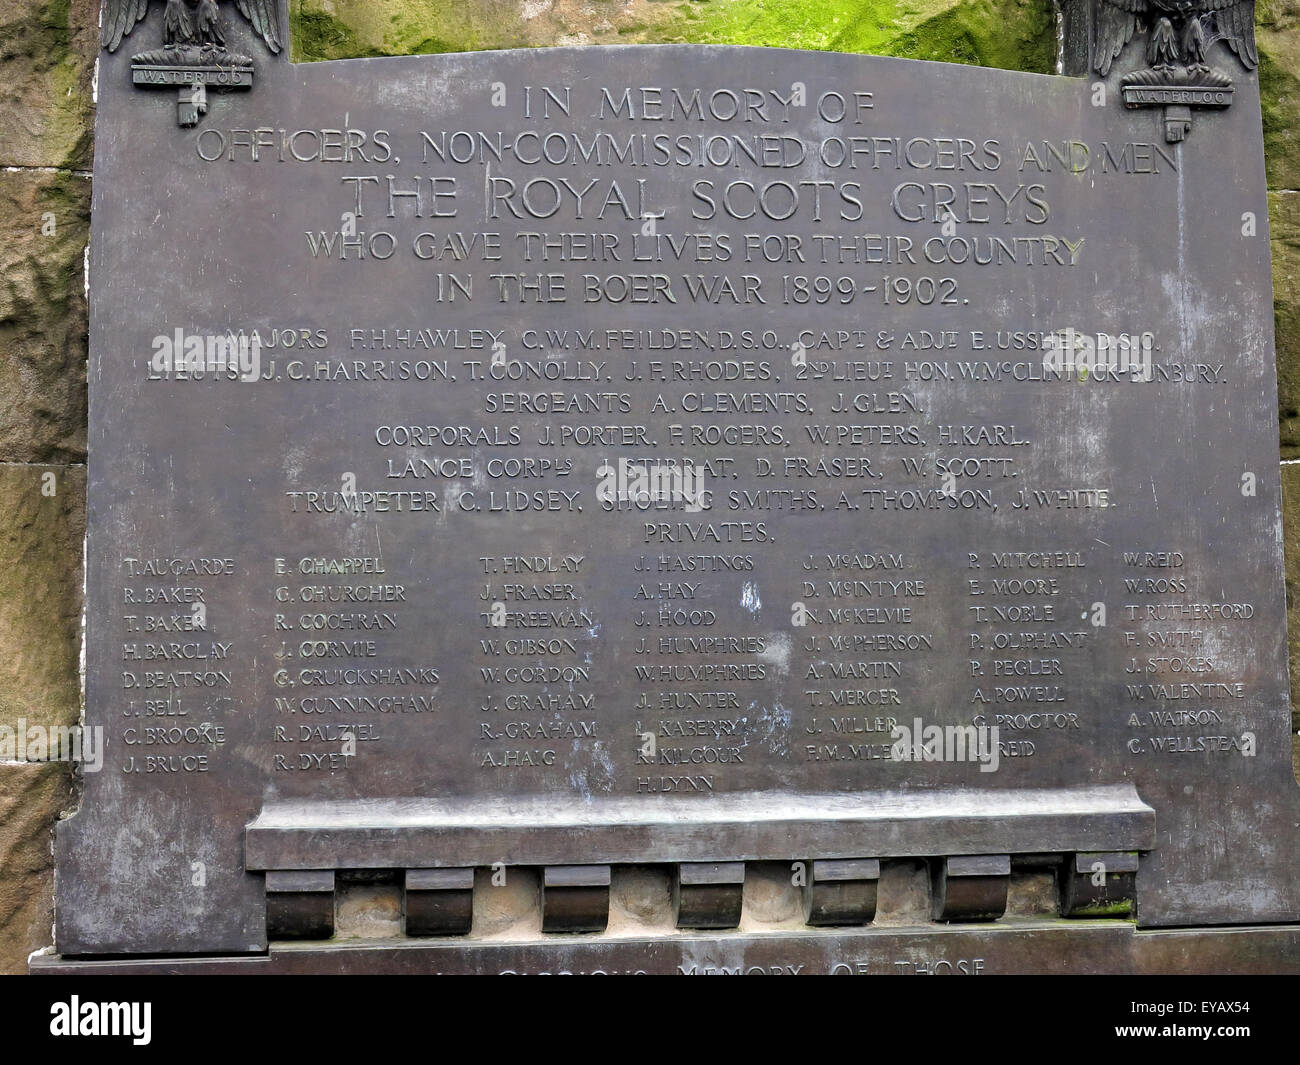 Plaque in memory of the Royal Scots Greys, Princes St, Edinburgh, Scotland, UK - Stock Image